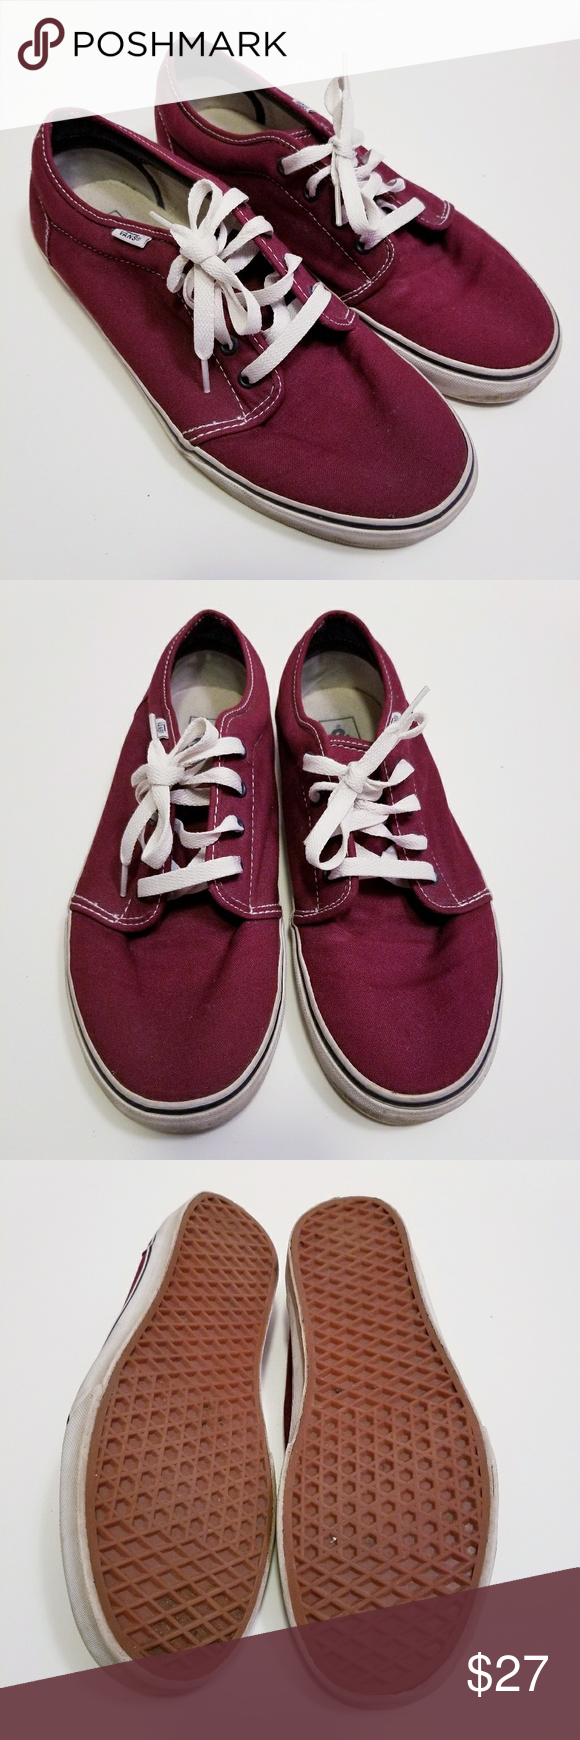 69bcad5832 Spotted while shopping on Poshmark  Vans Maroon Red Mens Size 11 Womens Sz  13 Shoes